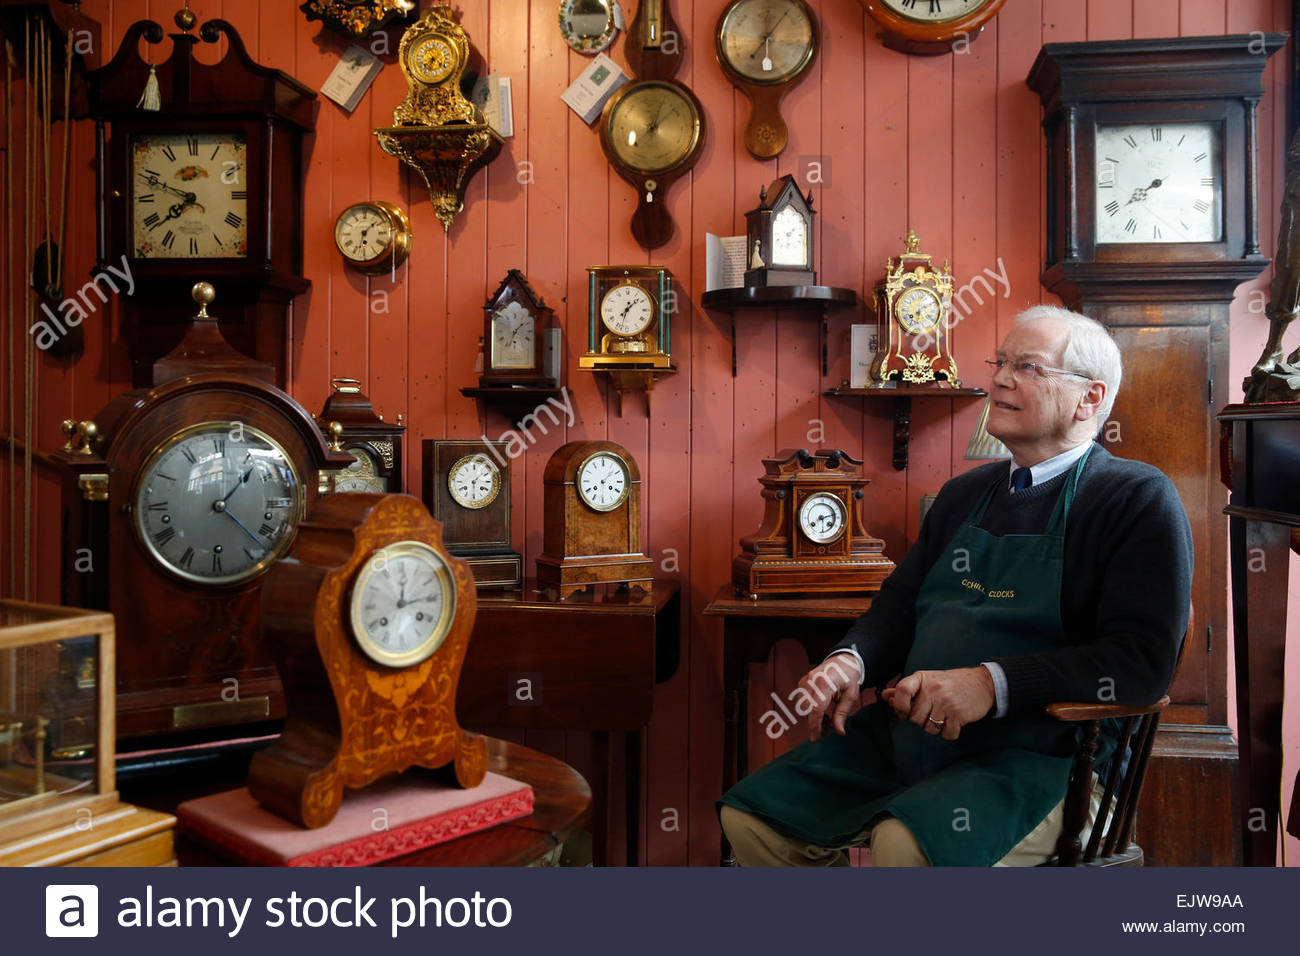 Antique clock restorer William Tyrrell sits among his clocks at 'Churchill Clocks' in Midhurst, West Sussex - Stock Image